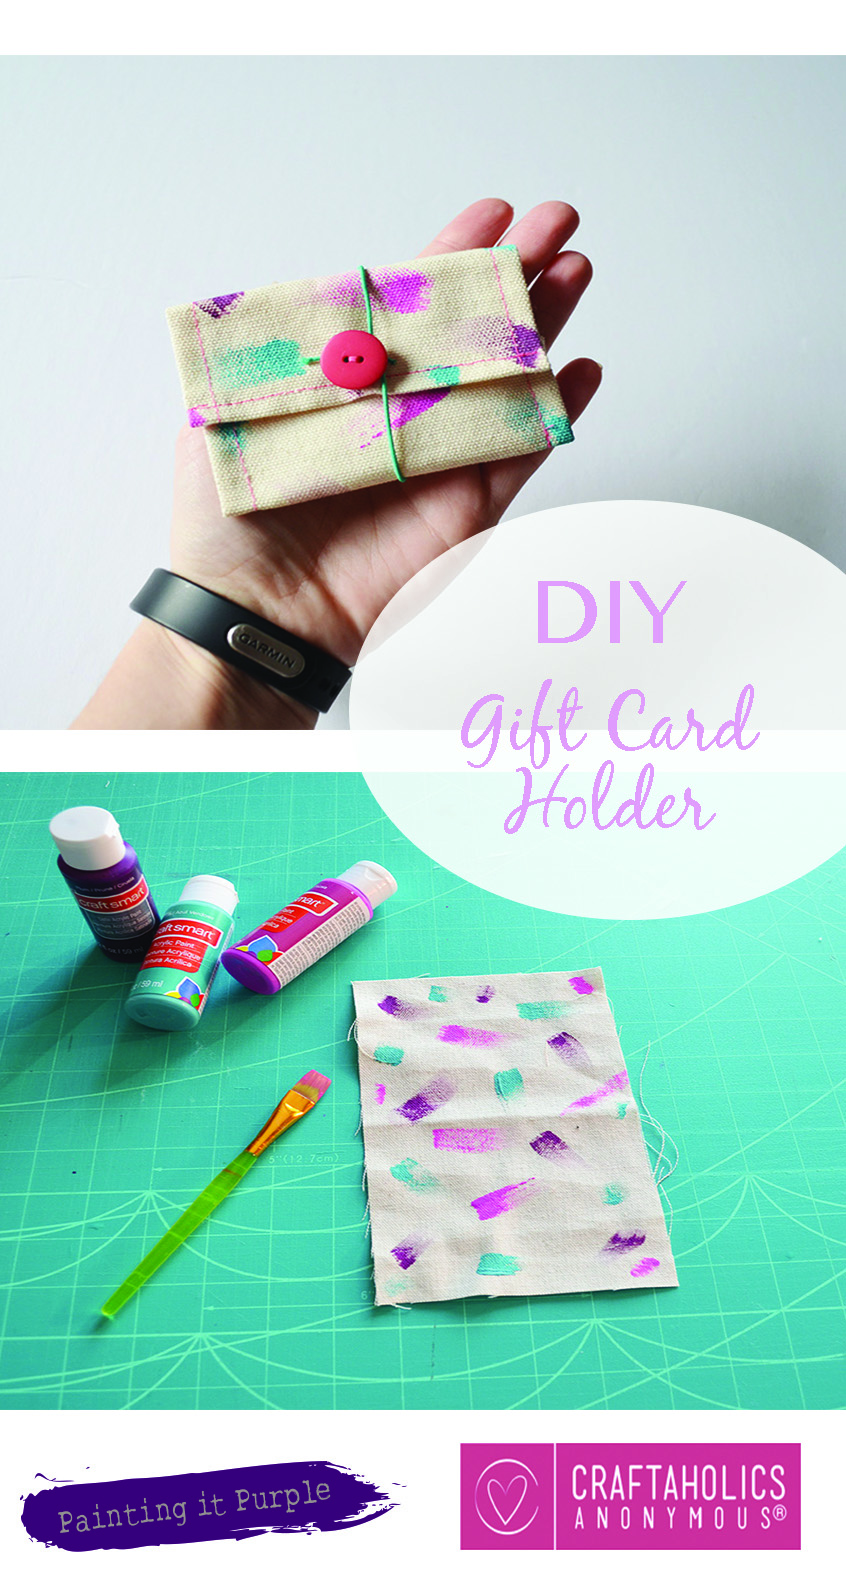 DIY GIFT CARD HOLDER